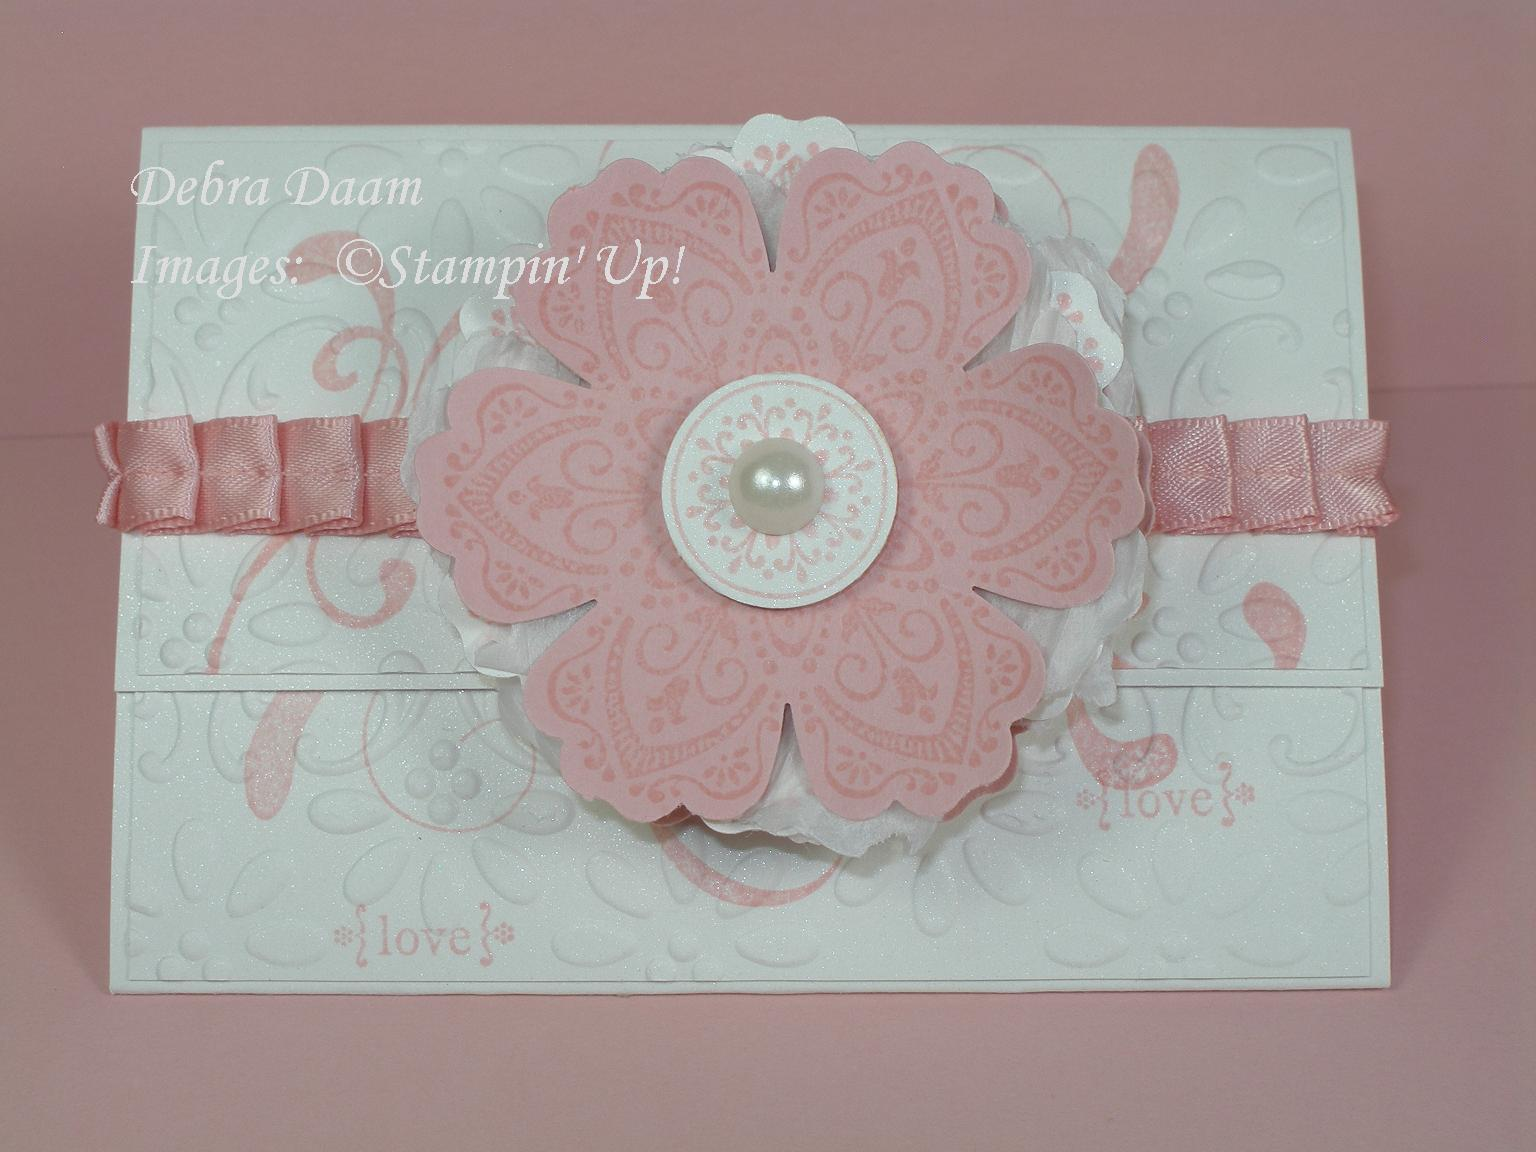 Wedding Gift Cards Online: Debra's Stamp Life: Wedding Shower Gift Card Holder